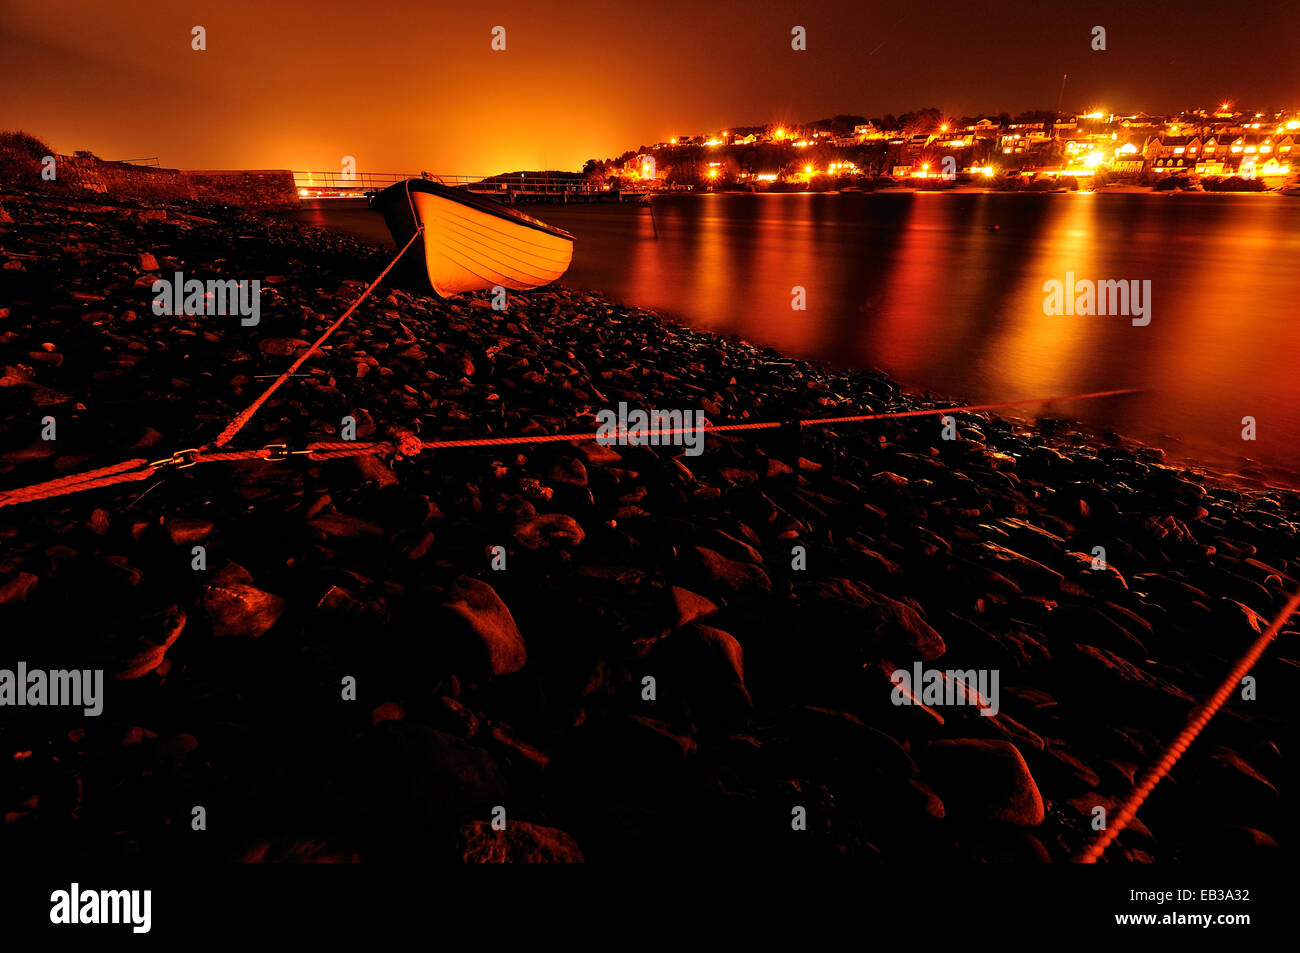 Ireland, Munster, County Cork, Crosshaven, Glowing townscape at night - Stock Image